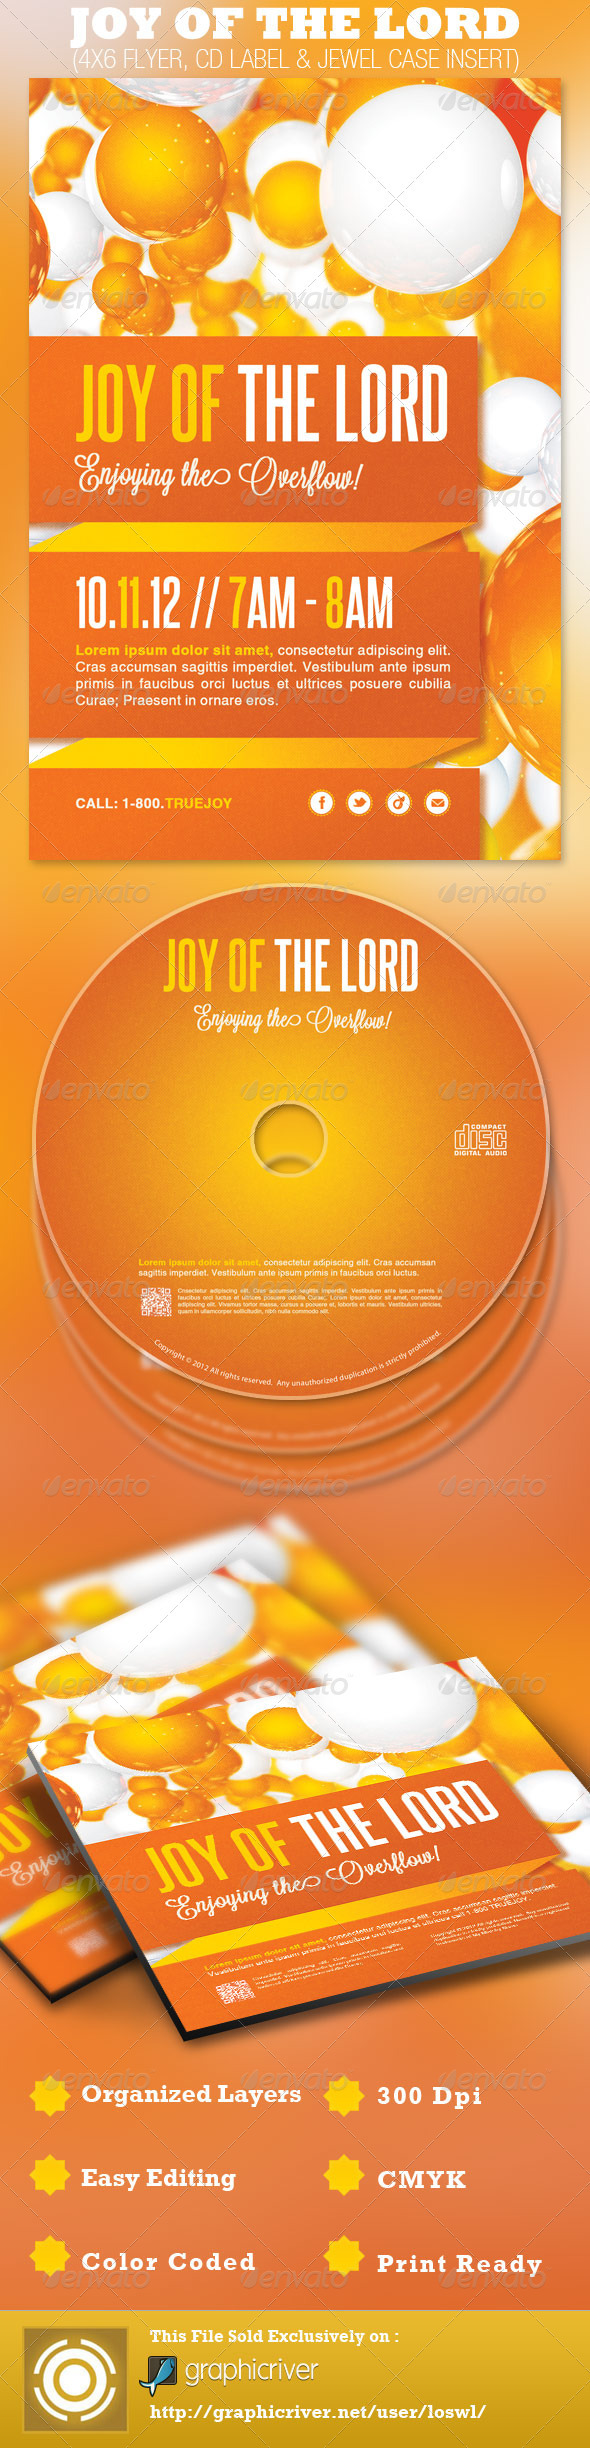 Joy of the Lord Church Flyer and CD Template  - Church Flyers